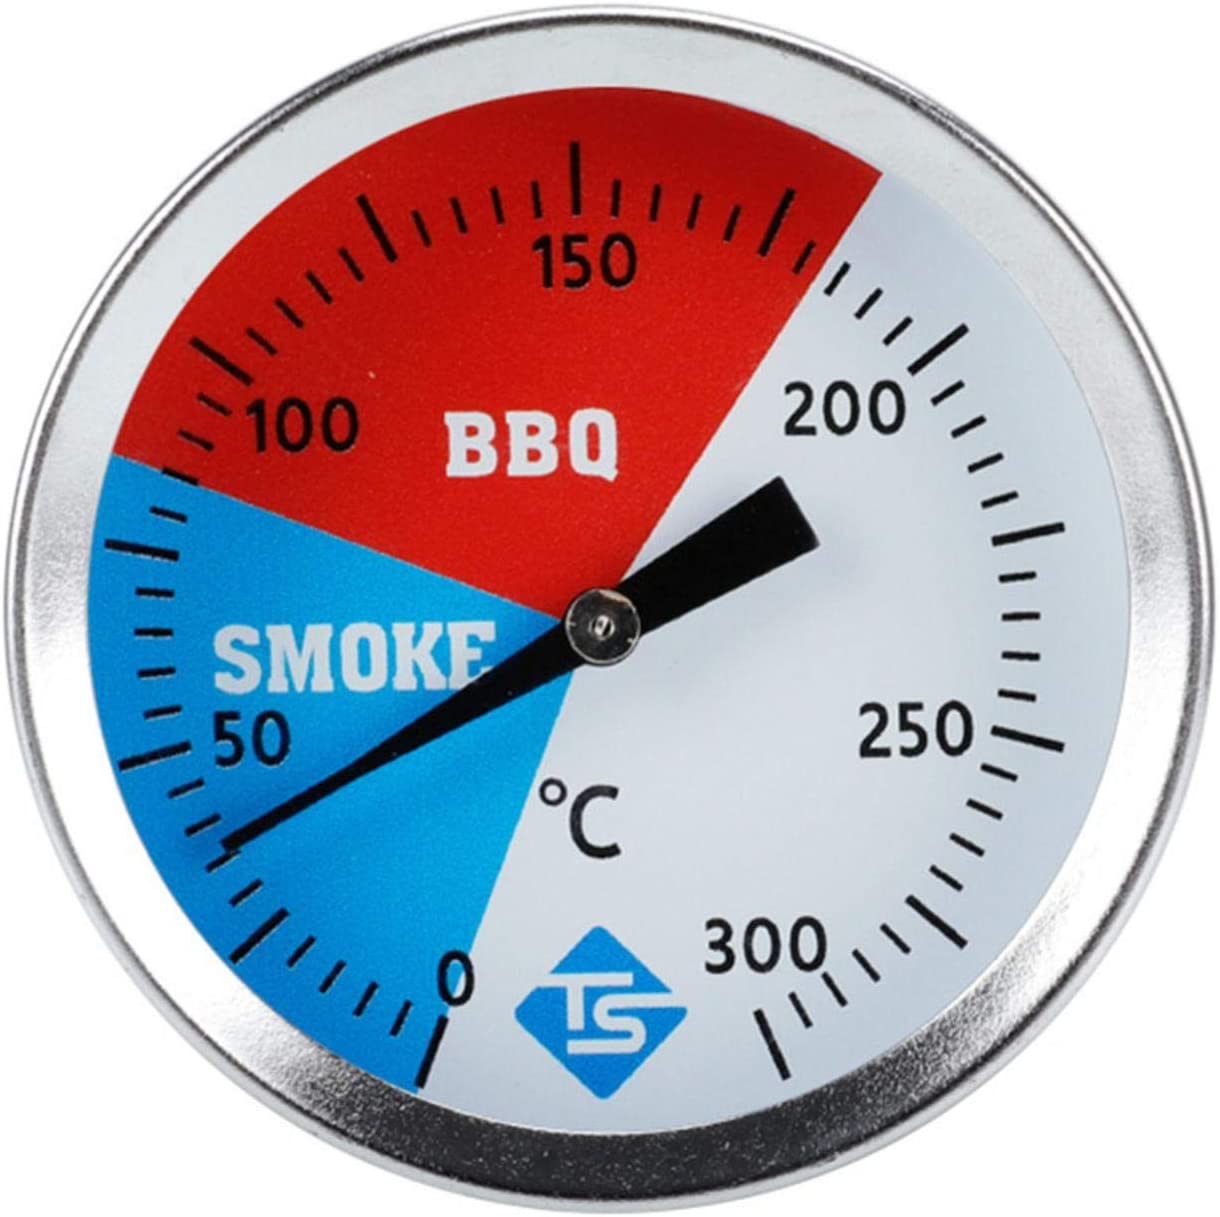 Charcoal Grill Ranking TOP13 Temperature Gauge Smoker Ther Max 73% OFF BBQ Accurate